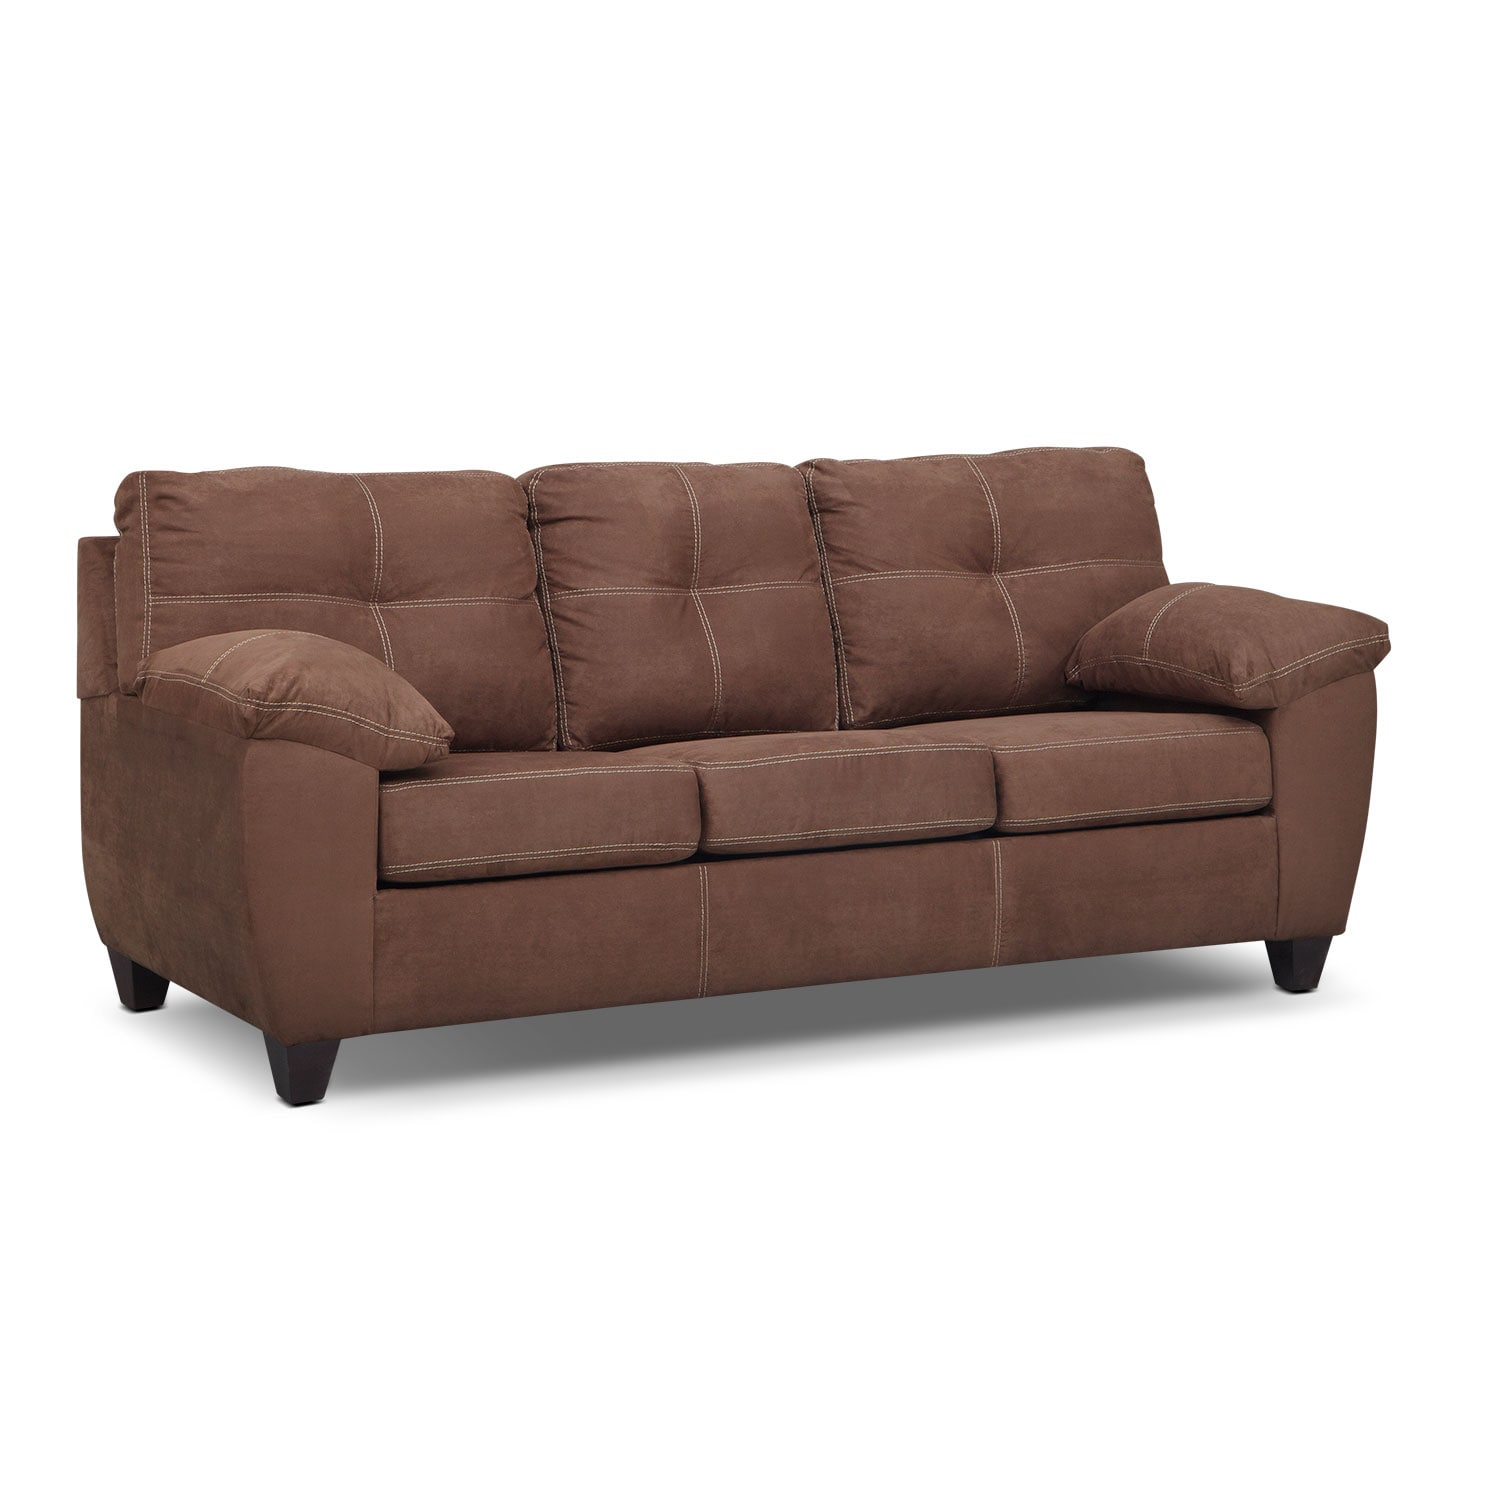 Living Room Furniture - Rialto Coffee Queen Sleeper Sofa- Innerspring